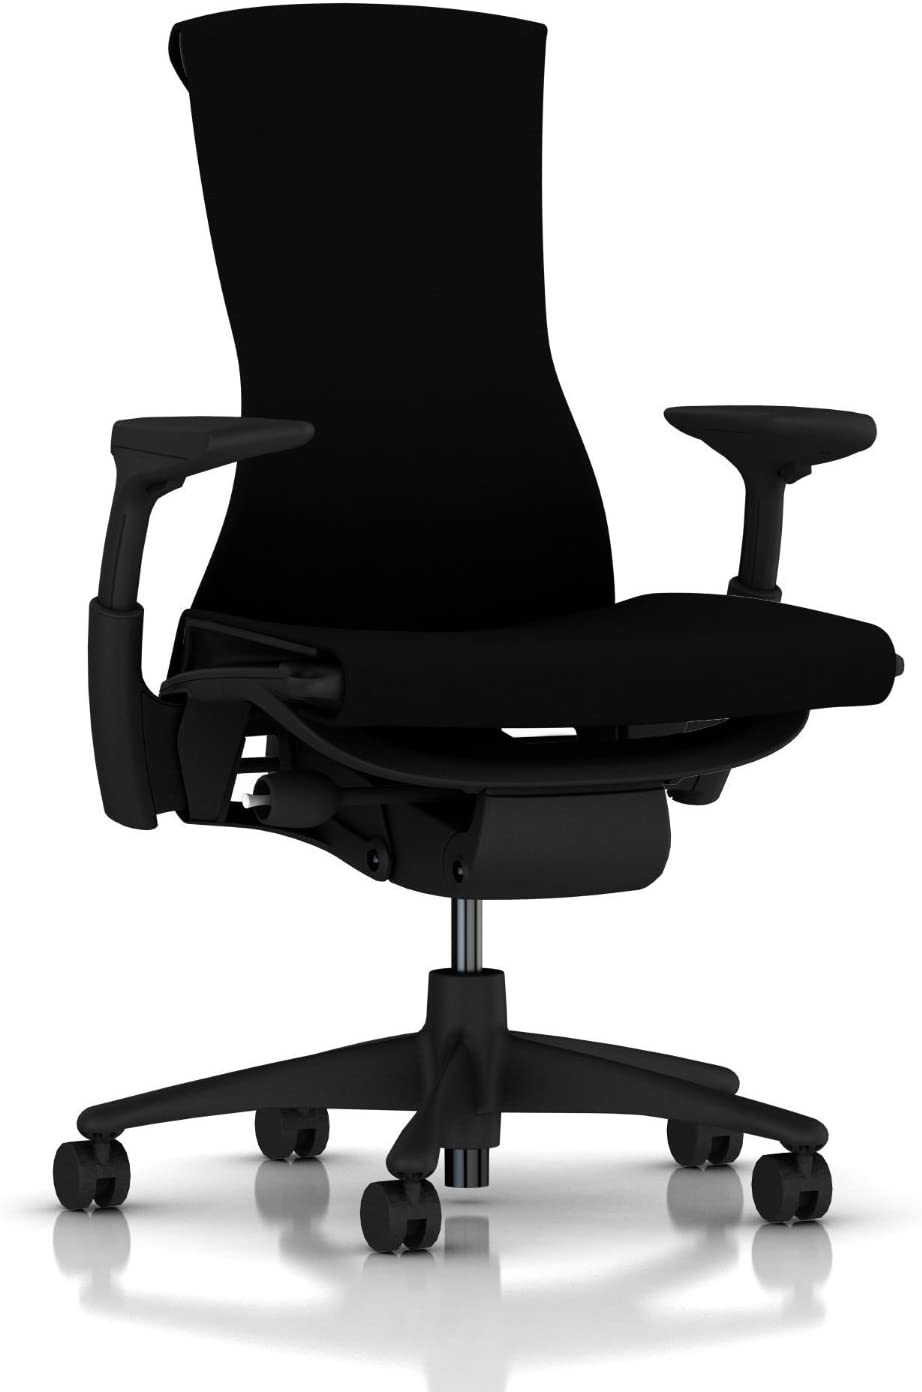 Best office chair back support